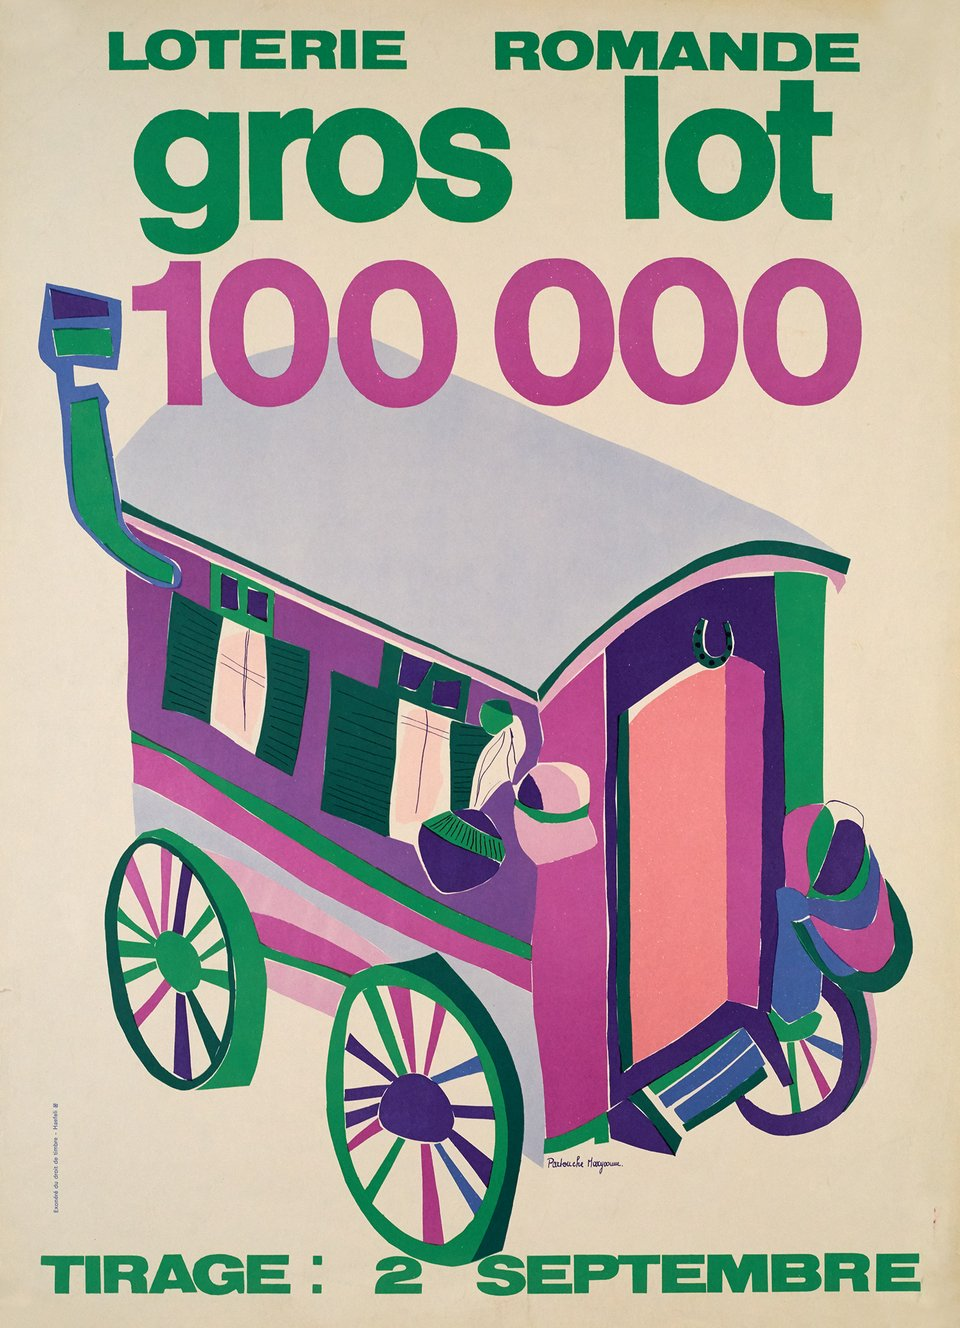 Loterie Romande, Gros Lot 100 000 – Vintage poster – Maryvonne PARTOUCHE – 1966